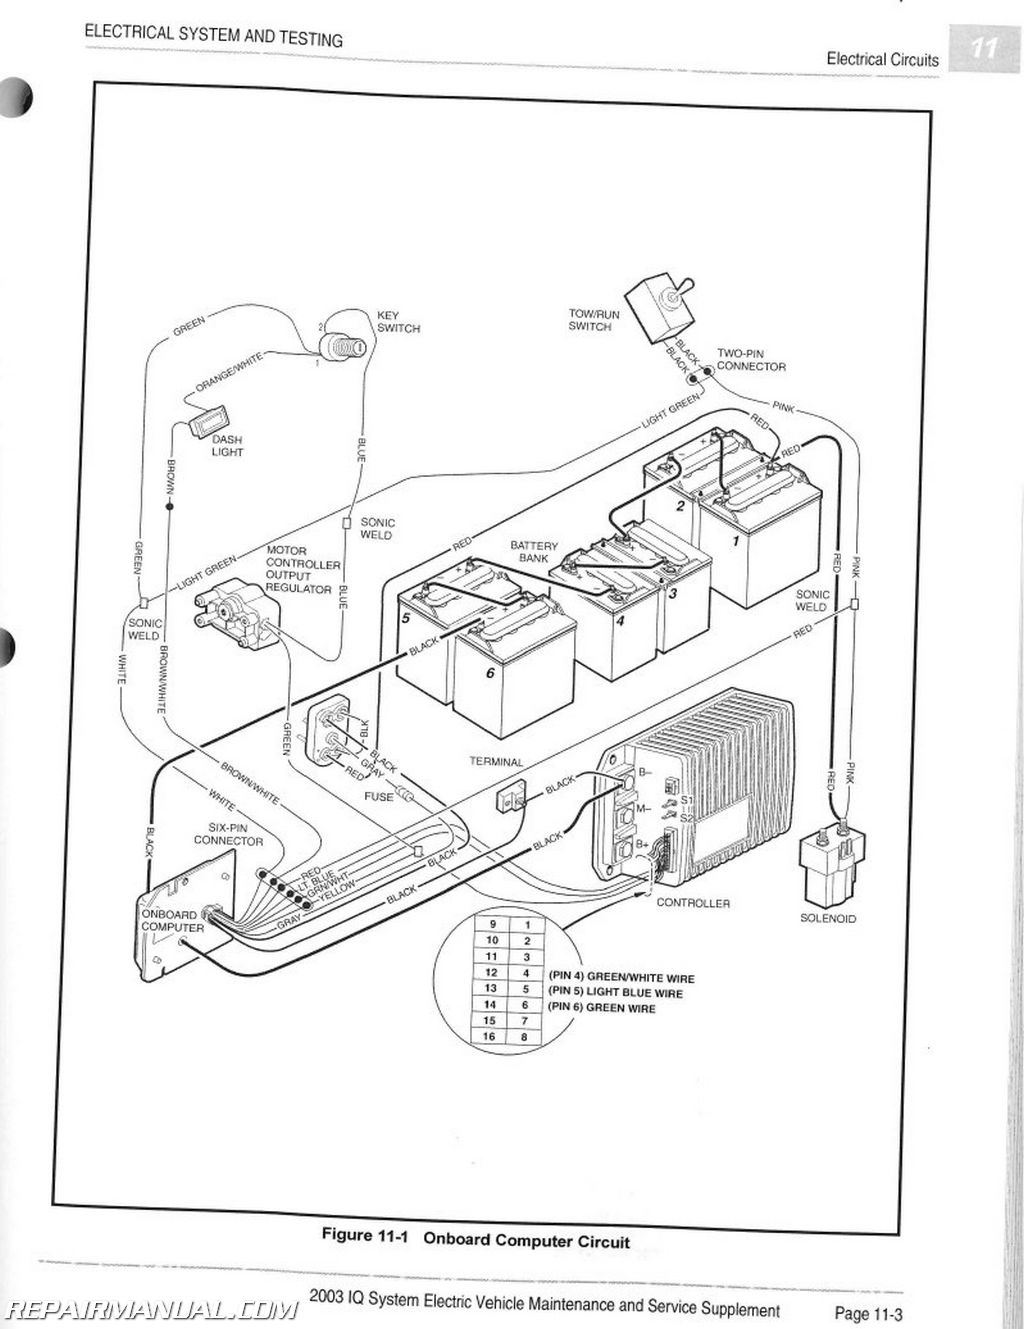 wiring diagram \u2022 free 2003 club car iq system maintenance and service